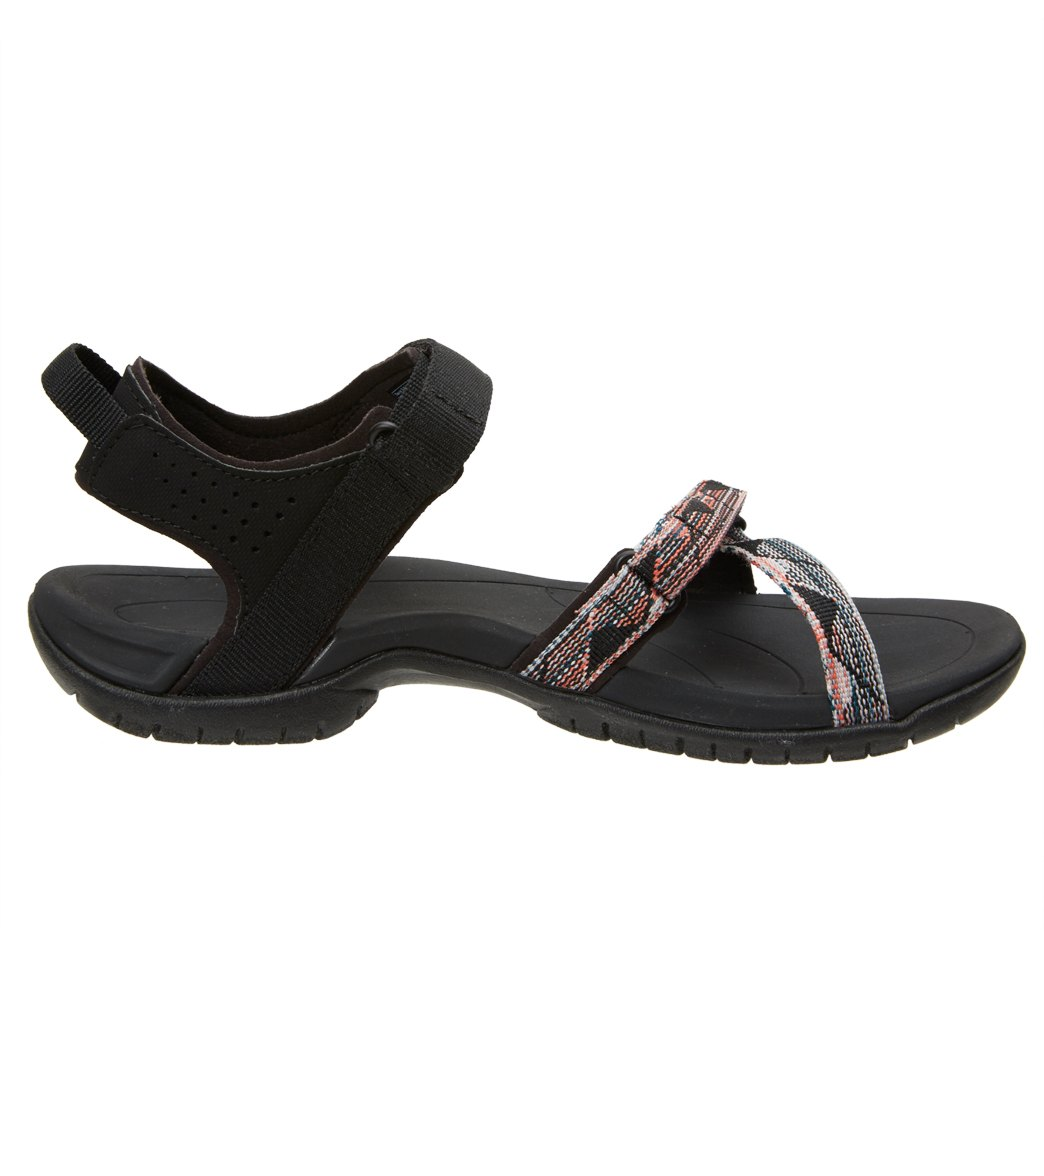 6bcf298b18f8 Teva Women s Verra Sandal at SwimOutlet.com - Free Shipping